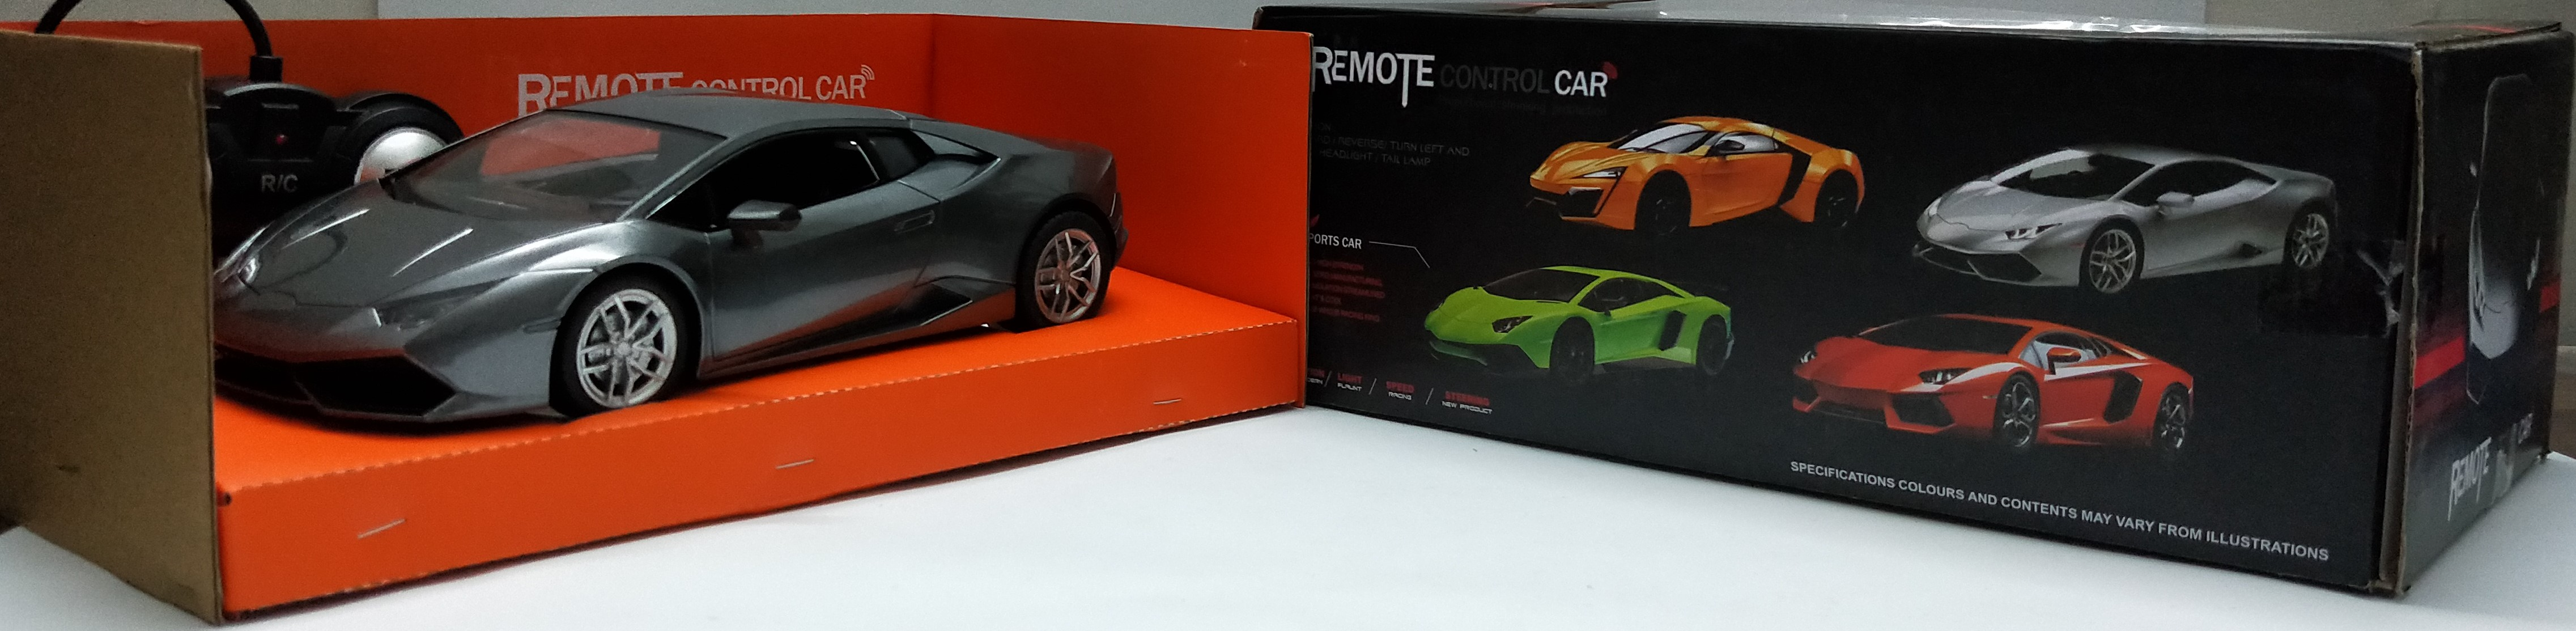 Premium Quality Remote Control Metallic Sports Car, Excellent toy for kids/boys/girls, Newest articles imported China toys cars/ gifts, Cars, Trains & Bikes Toys